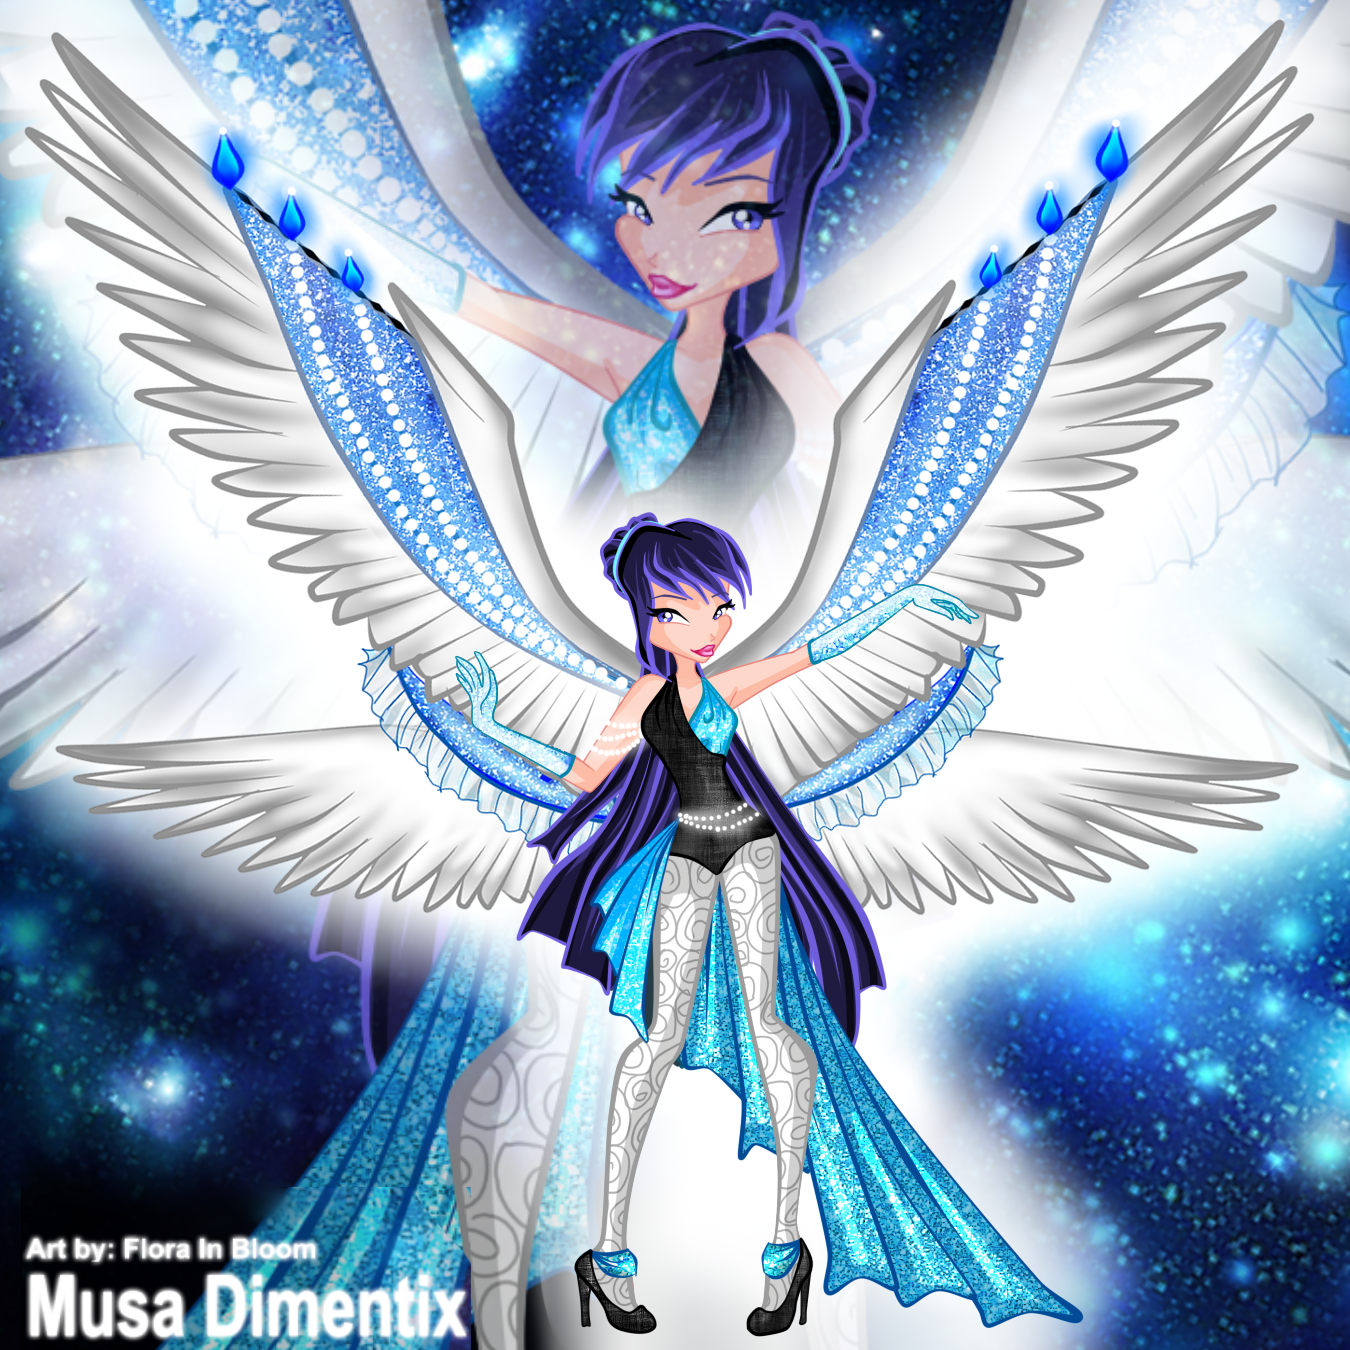 Musa dimentix full by winx - Bloom dessin anime ...